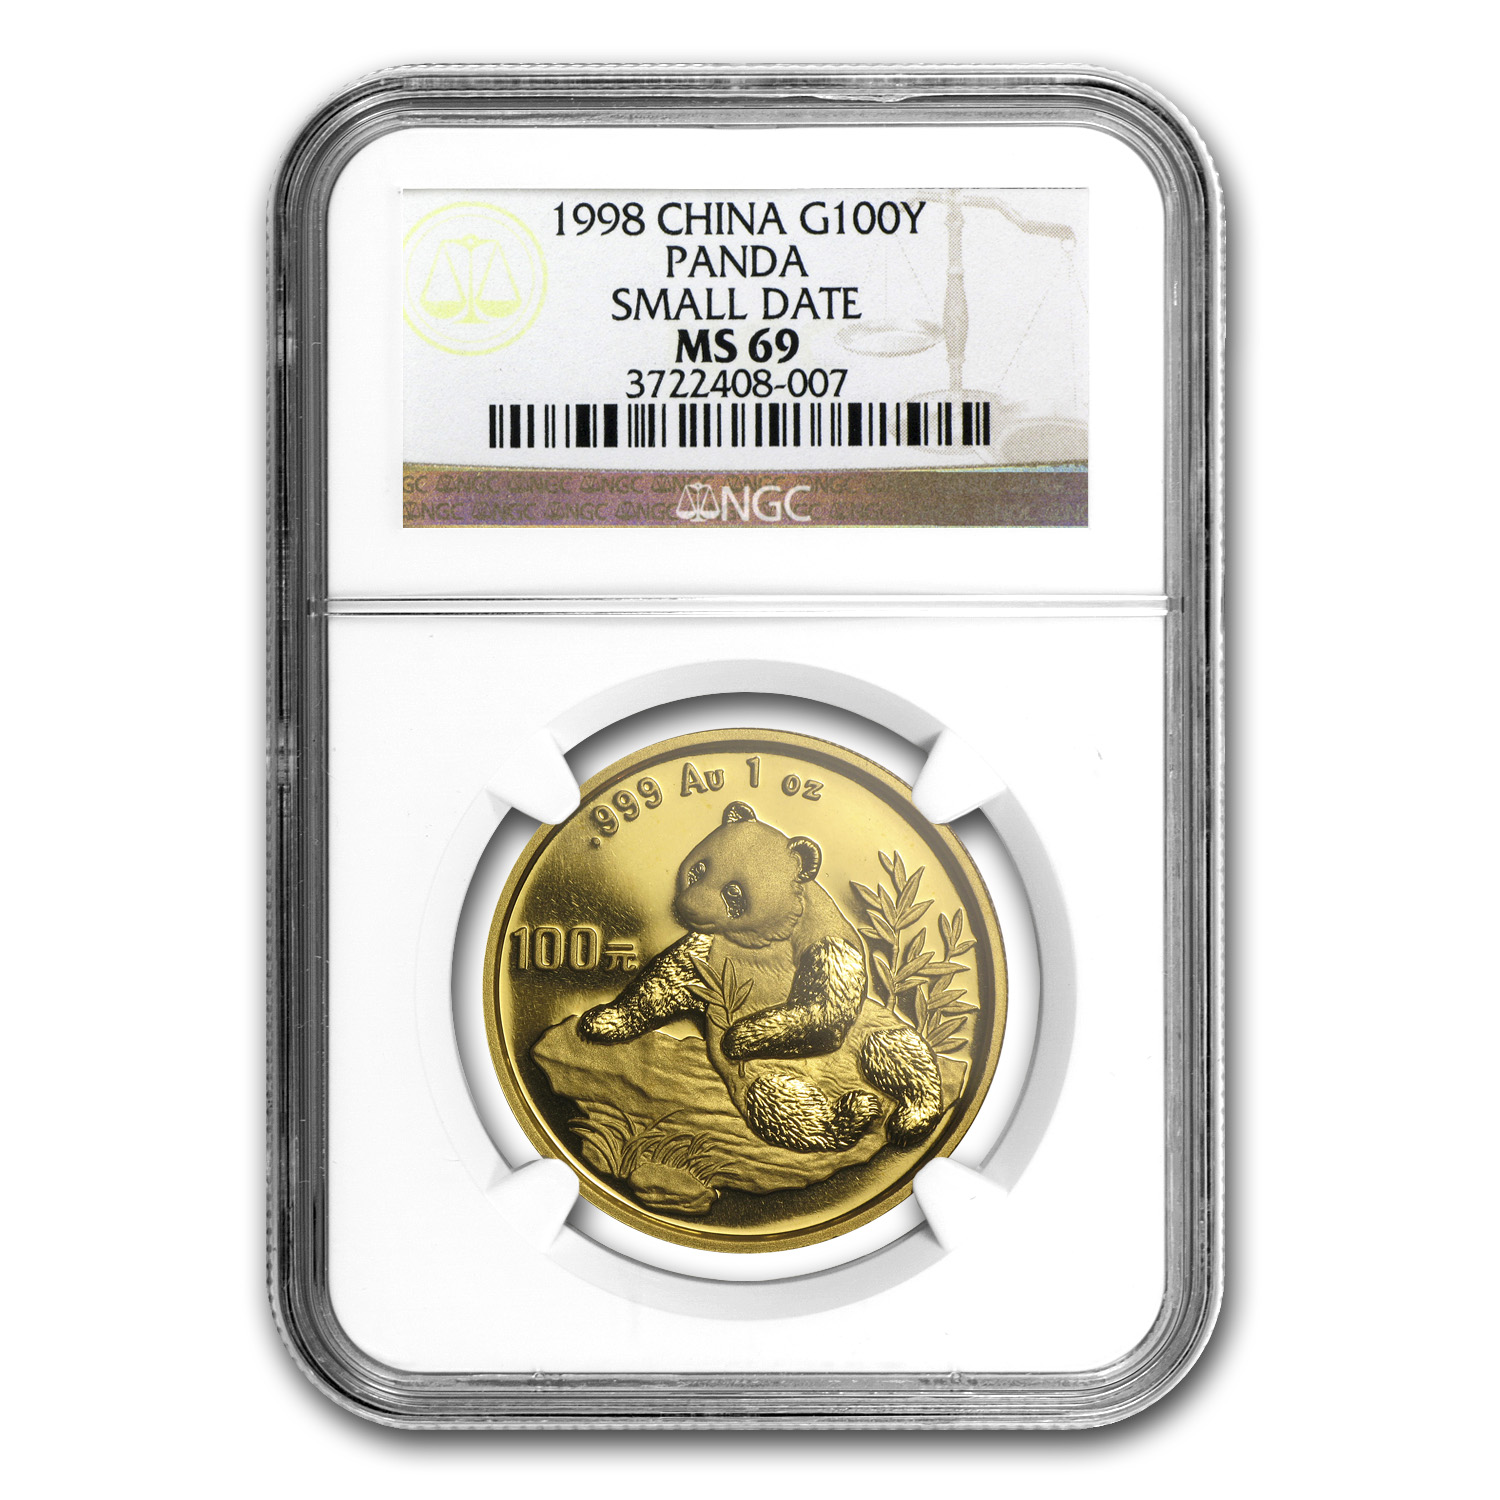 1998 1 oz Gold Chinese Panda Small Date MS-69 NGC